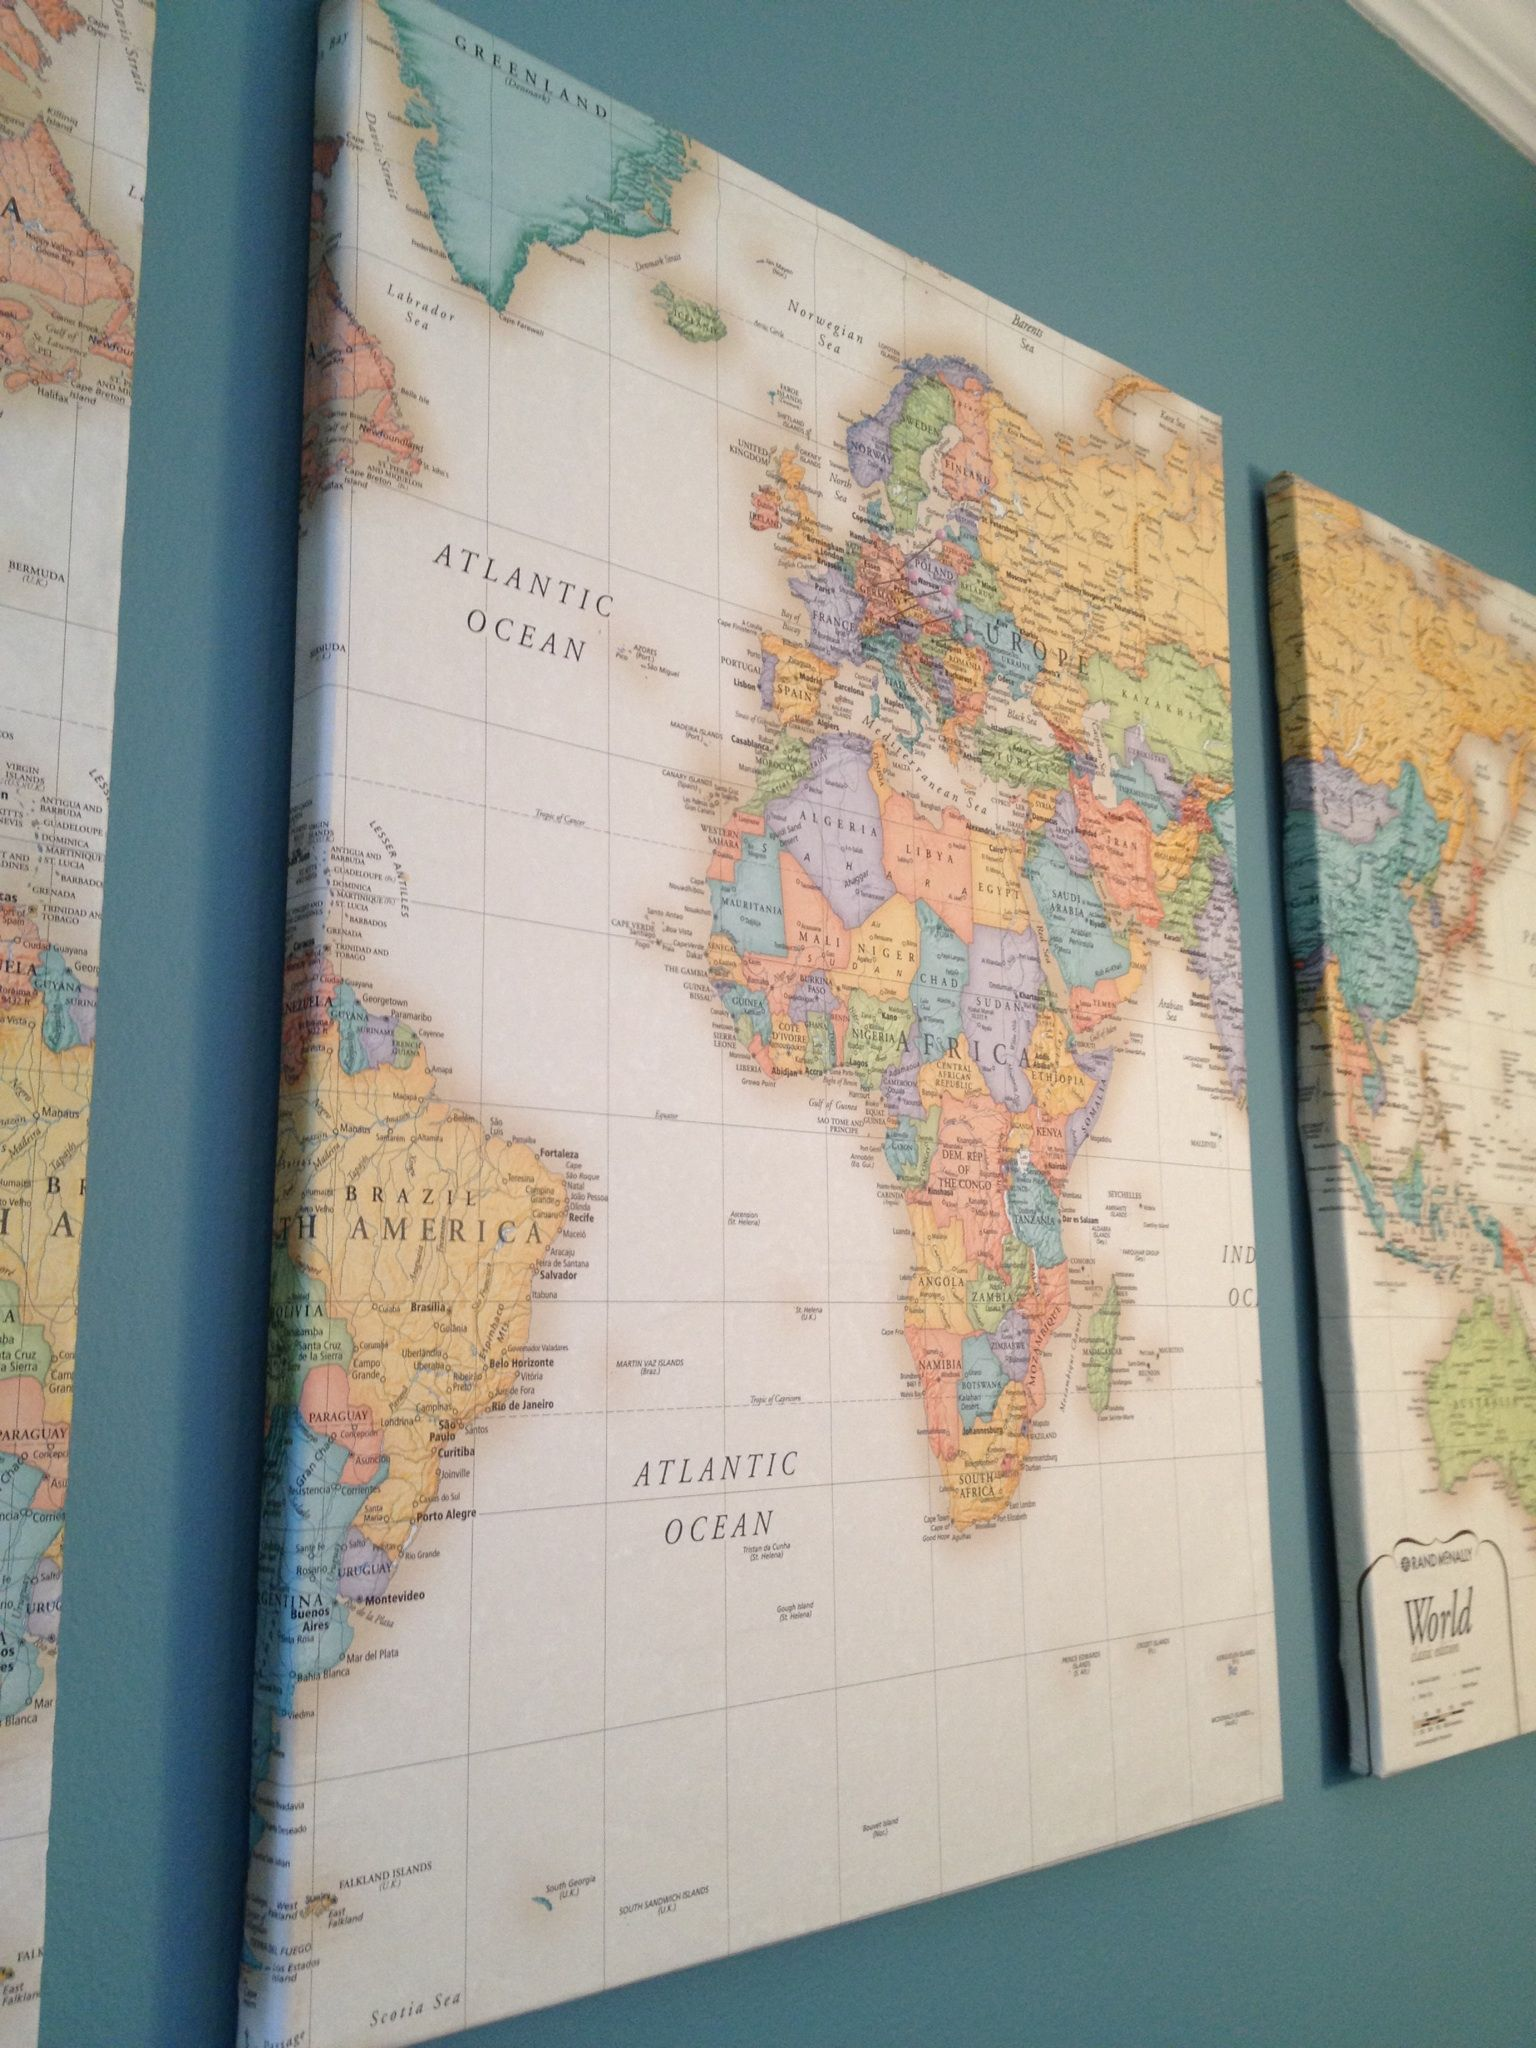 How To Make Put A Map On Canvas For Art What About Using Pins Or - Can i put a wall decal on canvas